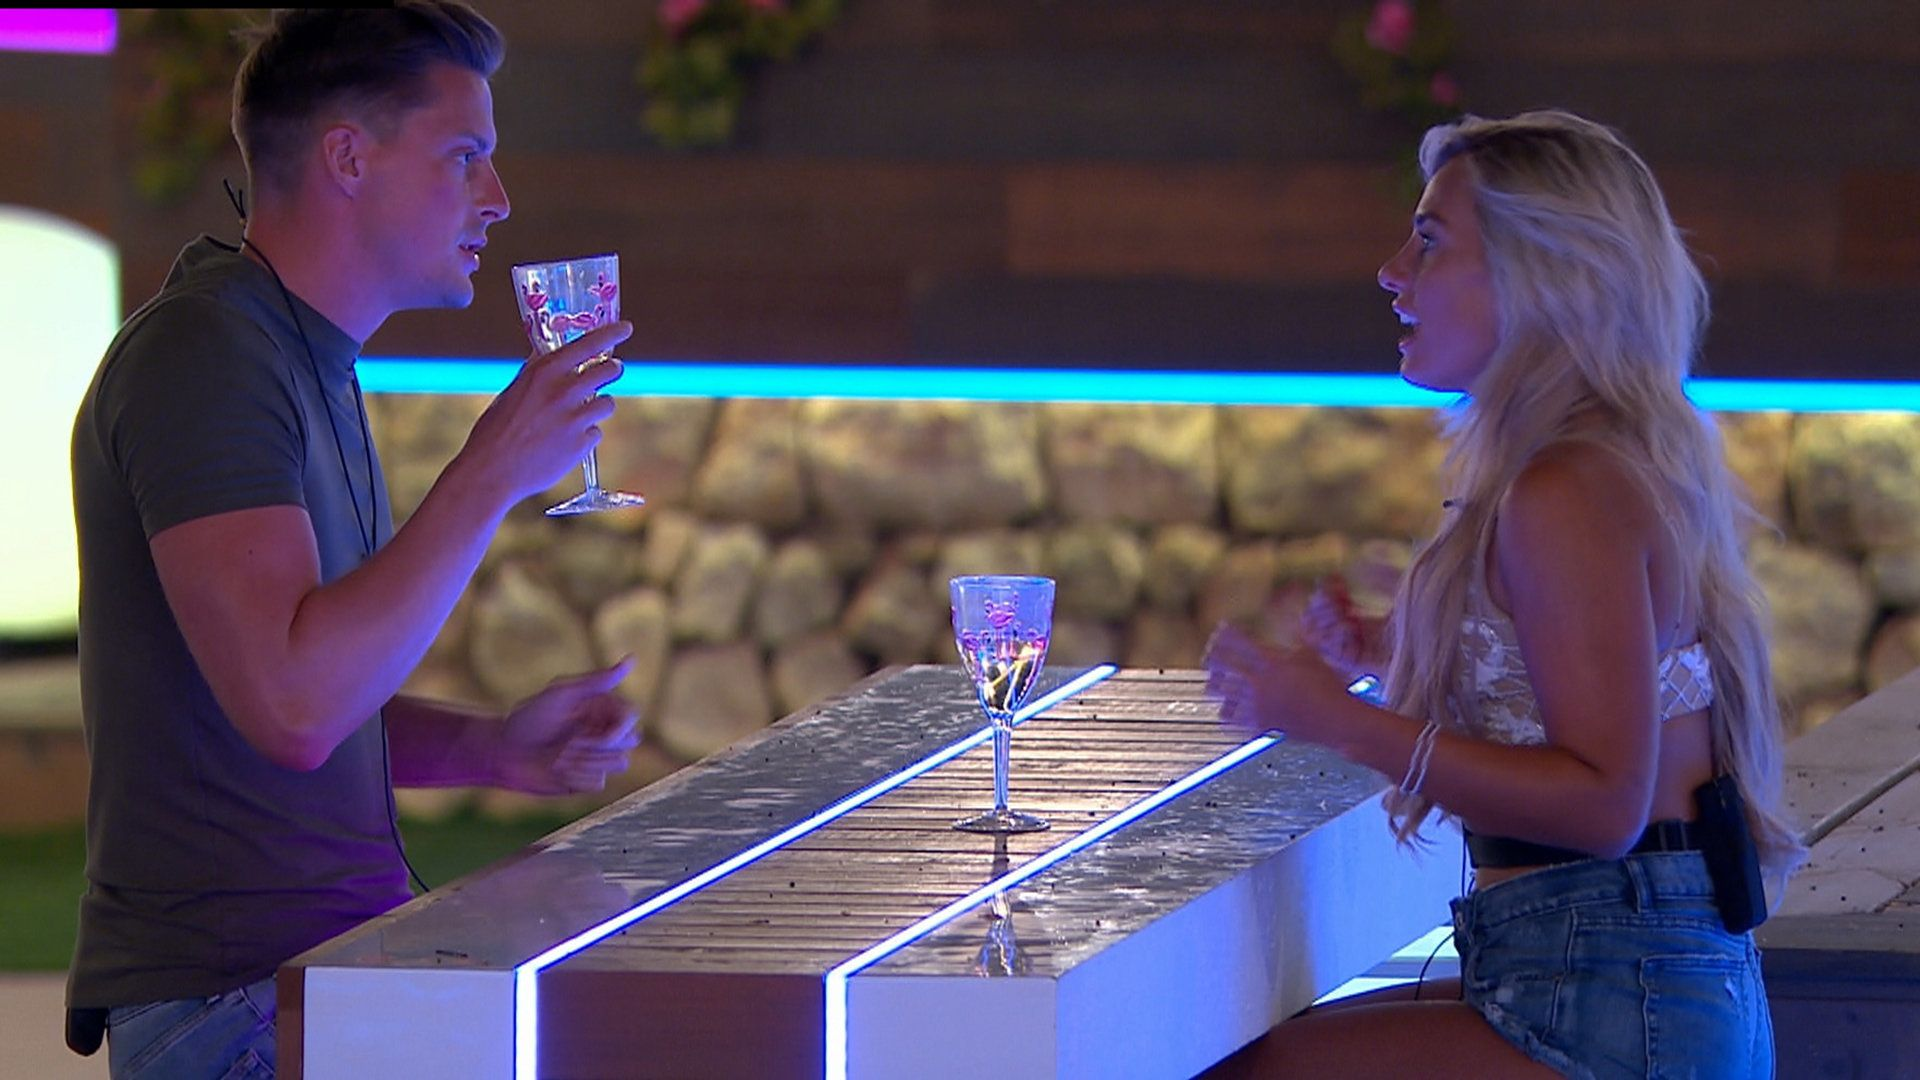 Alex and Ellie were involved in an uncomfortable confrontation on Monday's 'Love